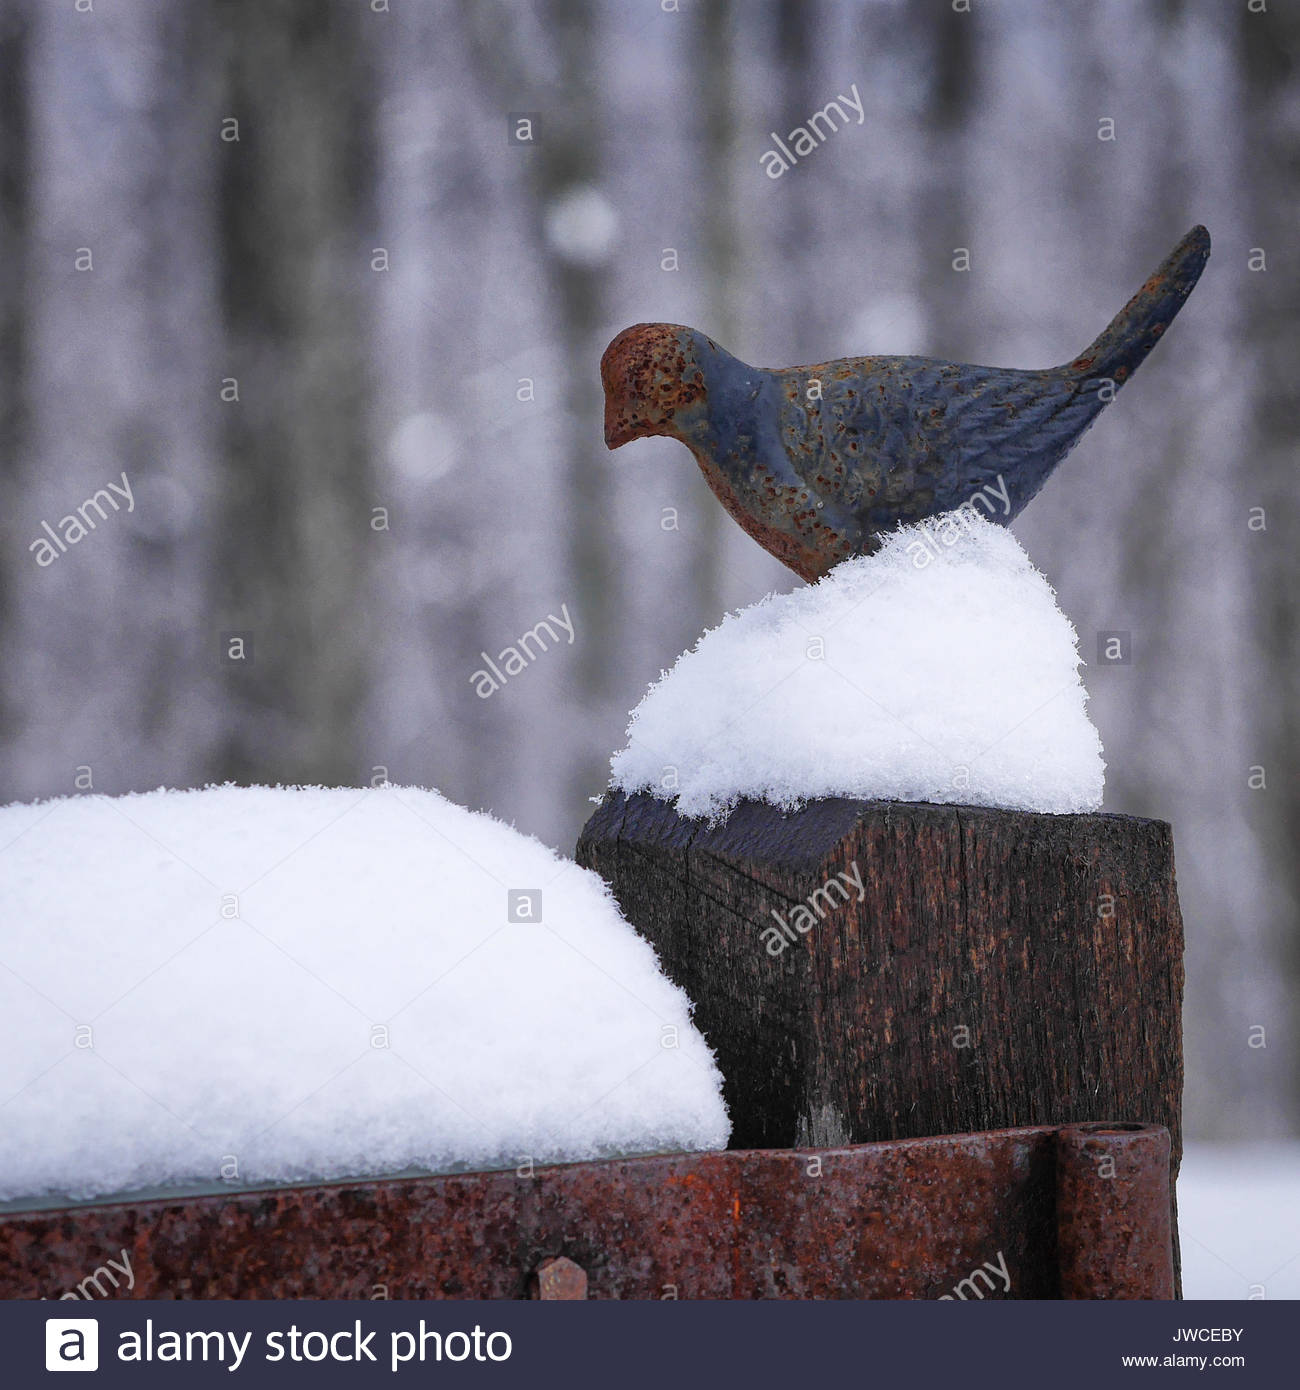 An iron bird ornament tops a fence post that is covered in snow. - Stock Image